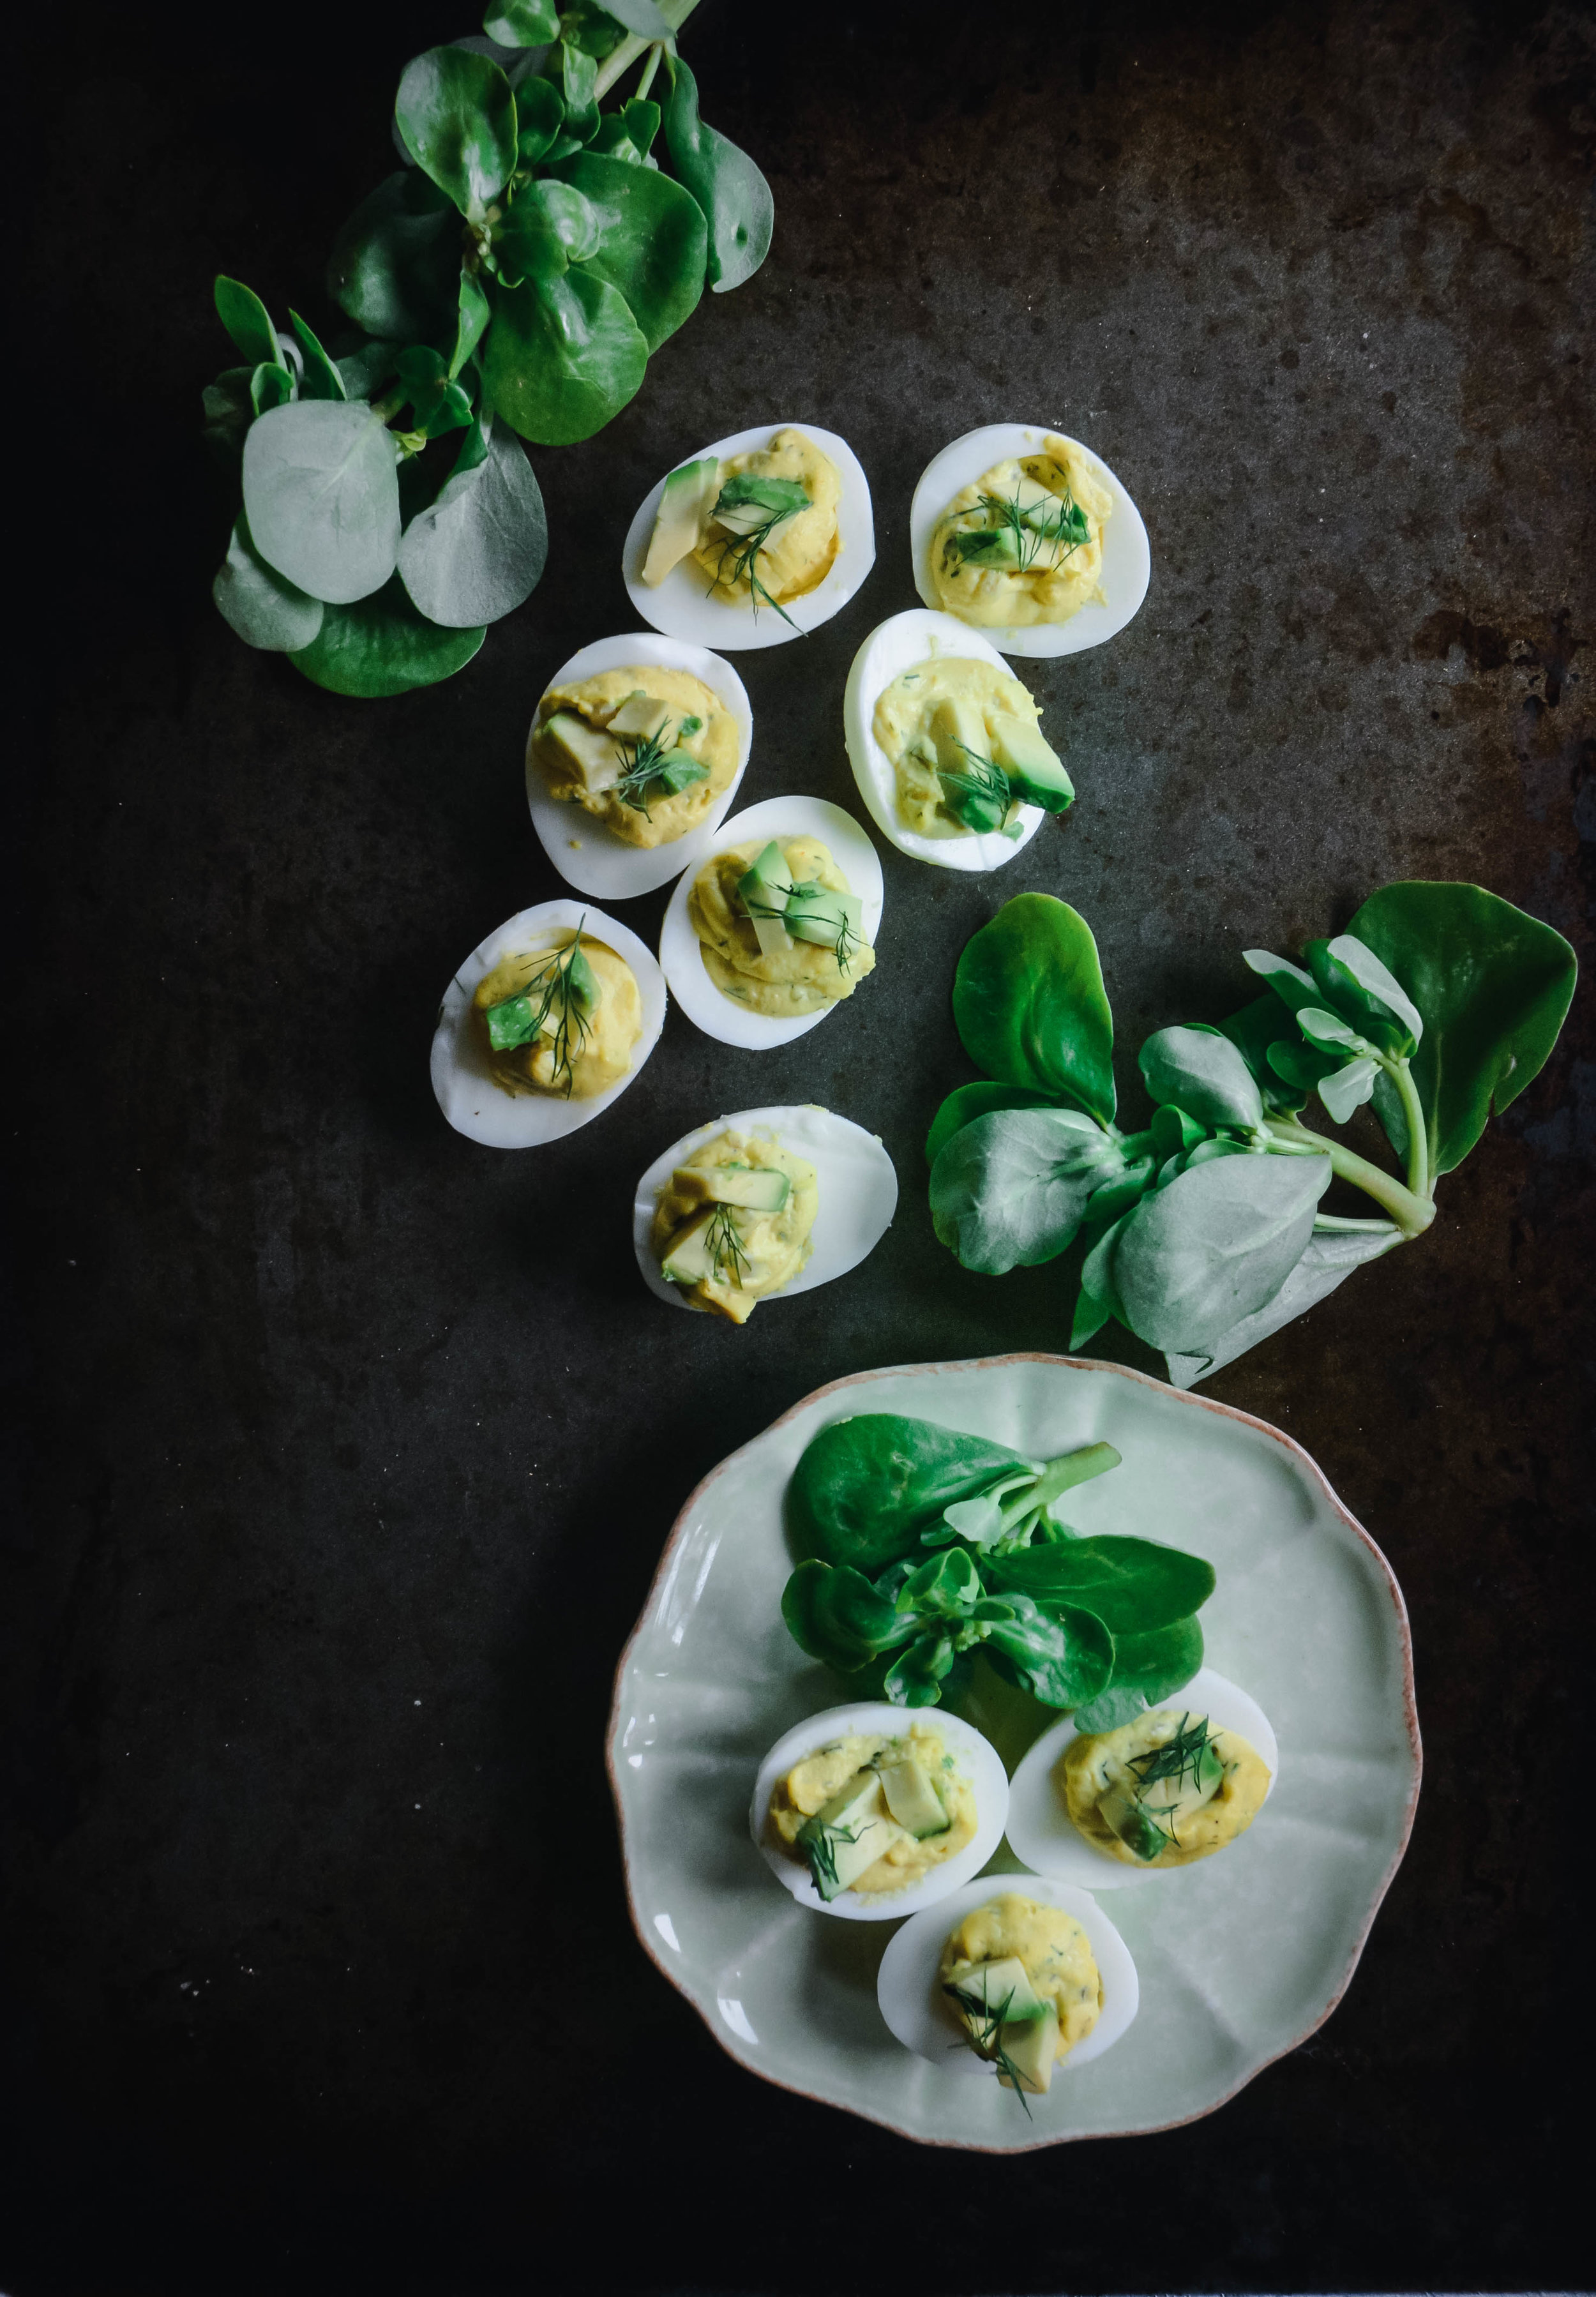 deviled eggs on table and plate with greens